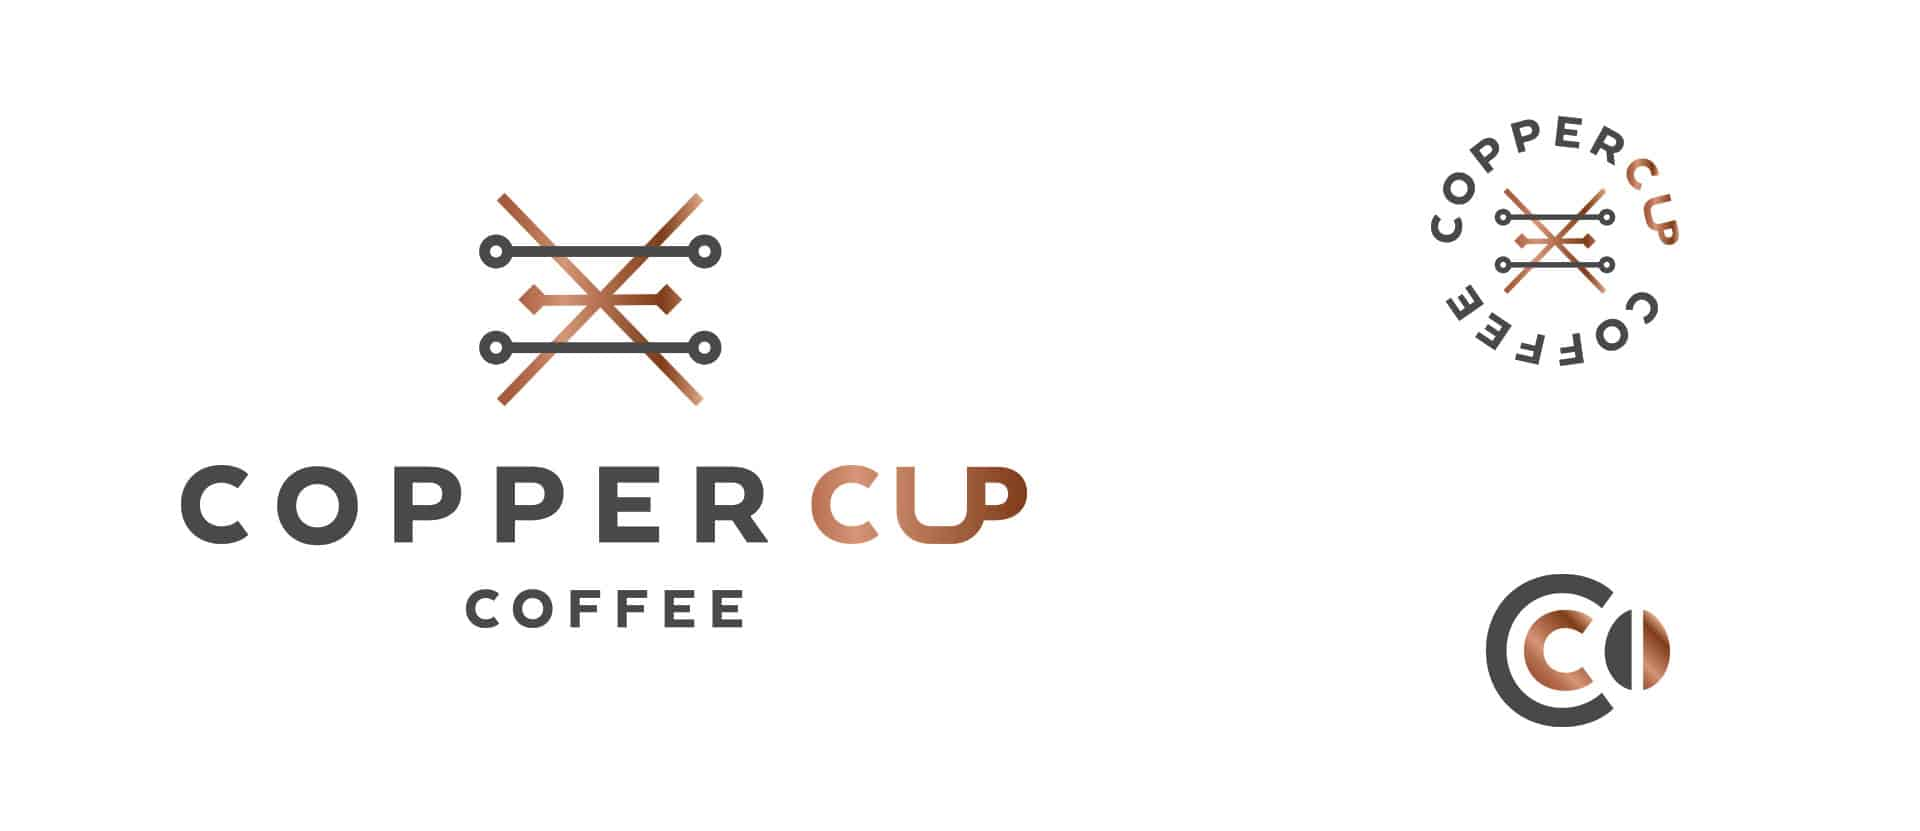 Copper Cup Coffee Company restaurant and cafe branding and concept development logo design and secondary logos